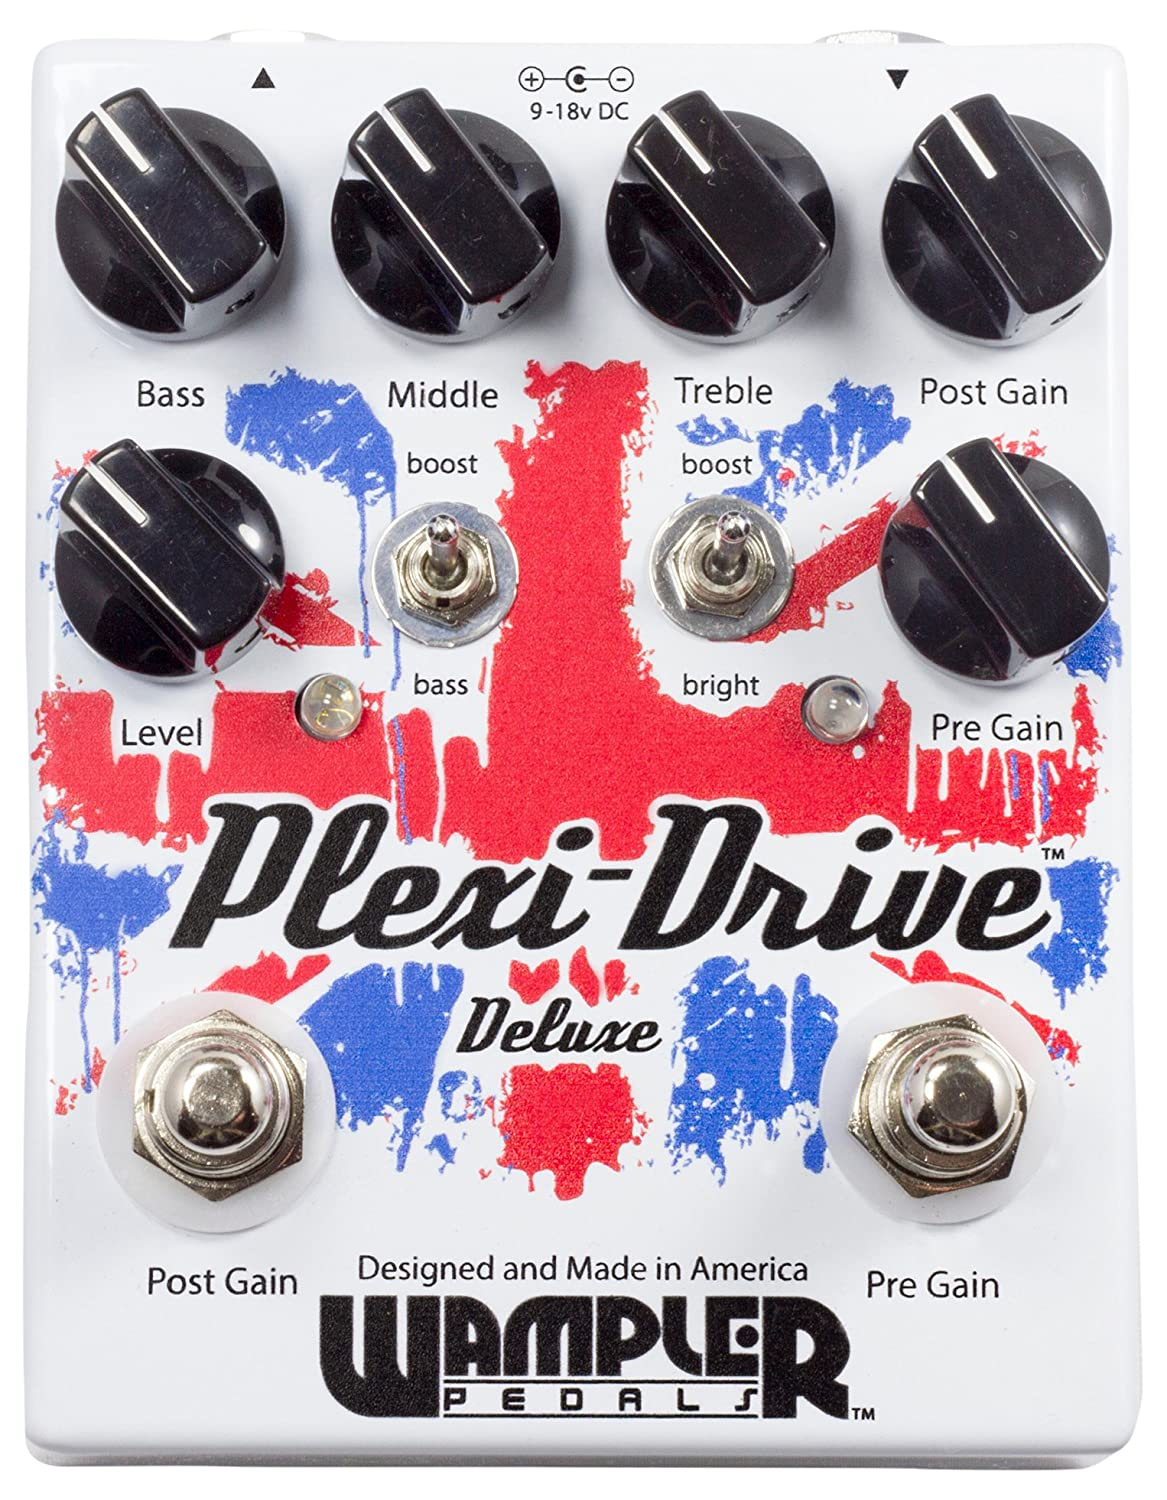 Wampler Plexi Drive Deluxe Guitar Effects Pedal Musical 147 Pedals Simple Tone Control Brian May Treble Booster Instruments Stage Studio